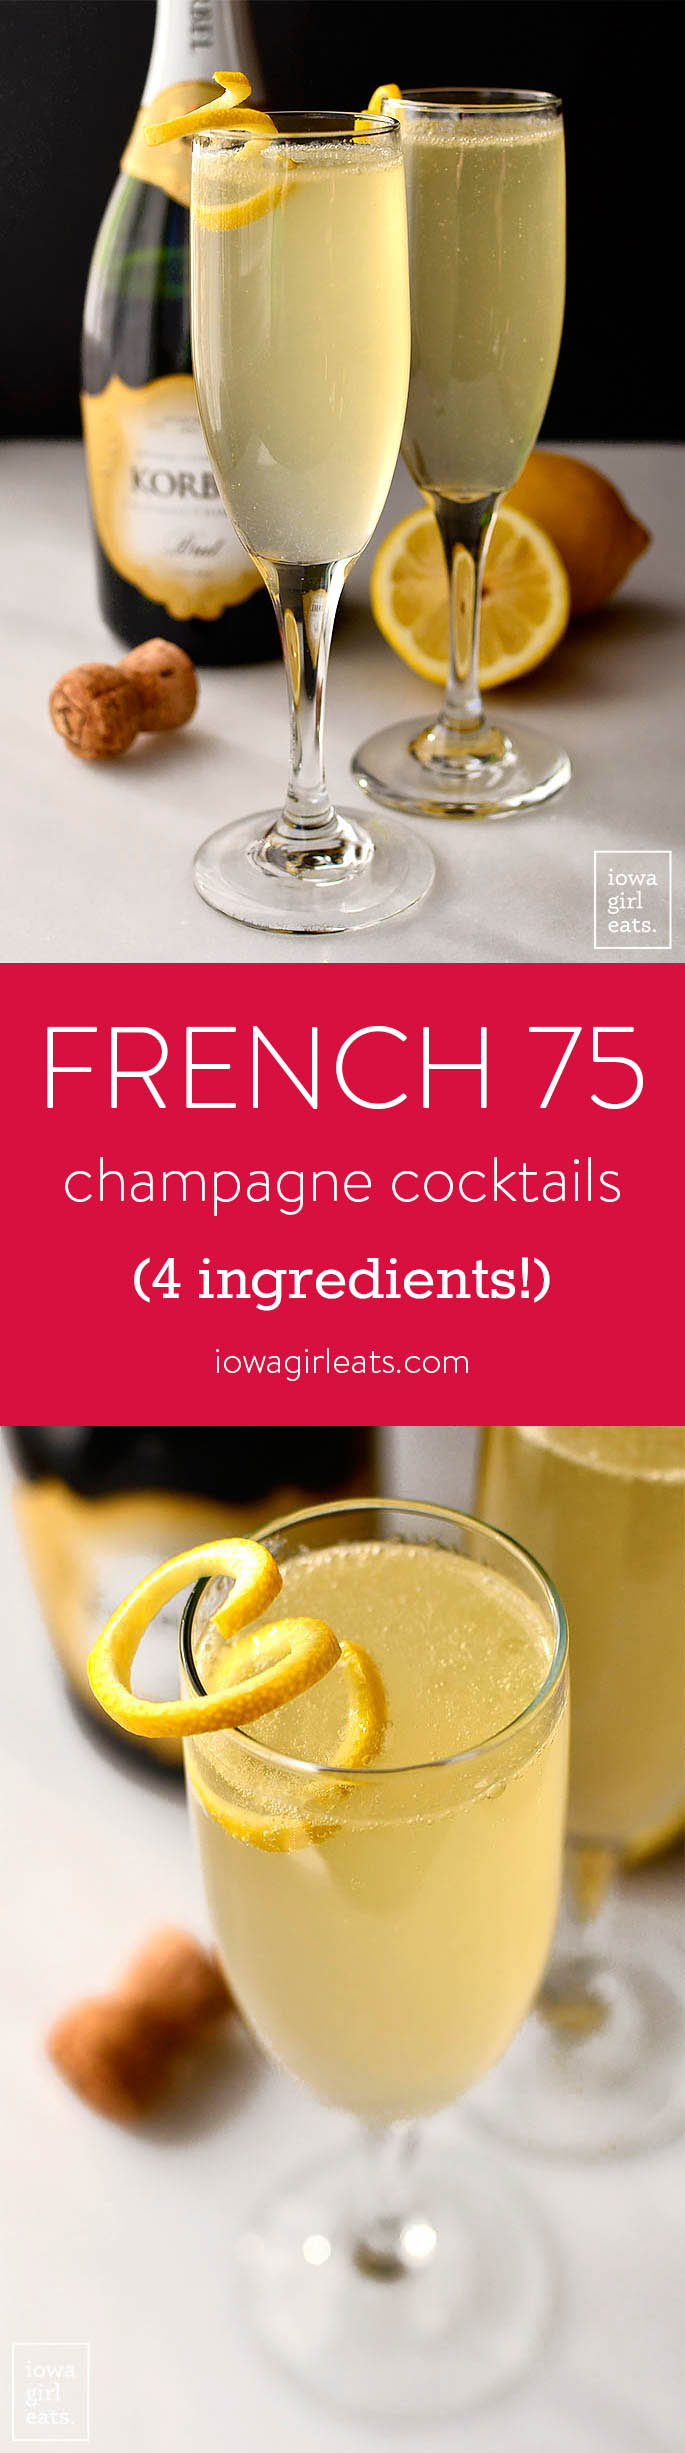 French 75 Champagne Cocktails are made with just four ingredients - no specialty liqueurs or mixers needed! Enjoy this bright and bubbly champagne cocktail for any occasion. | iowagirleats.com